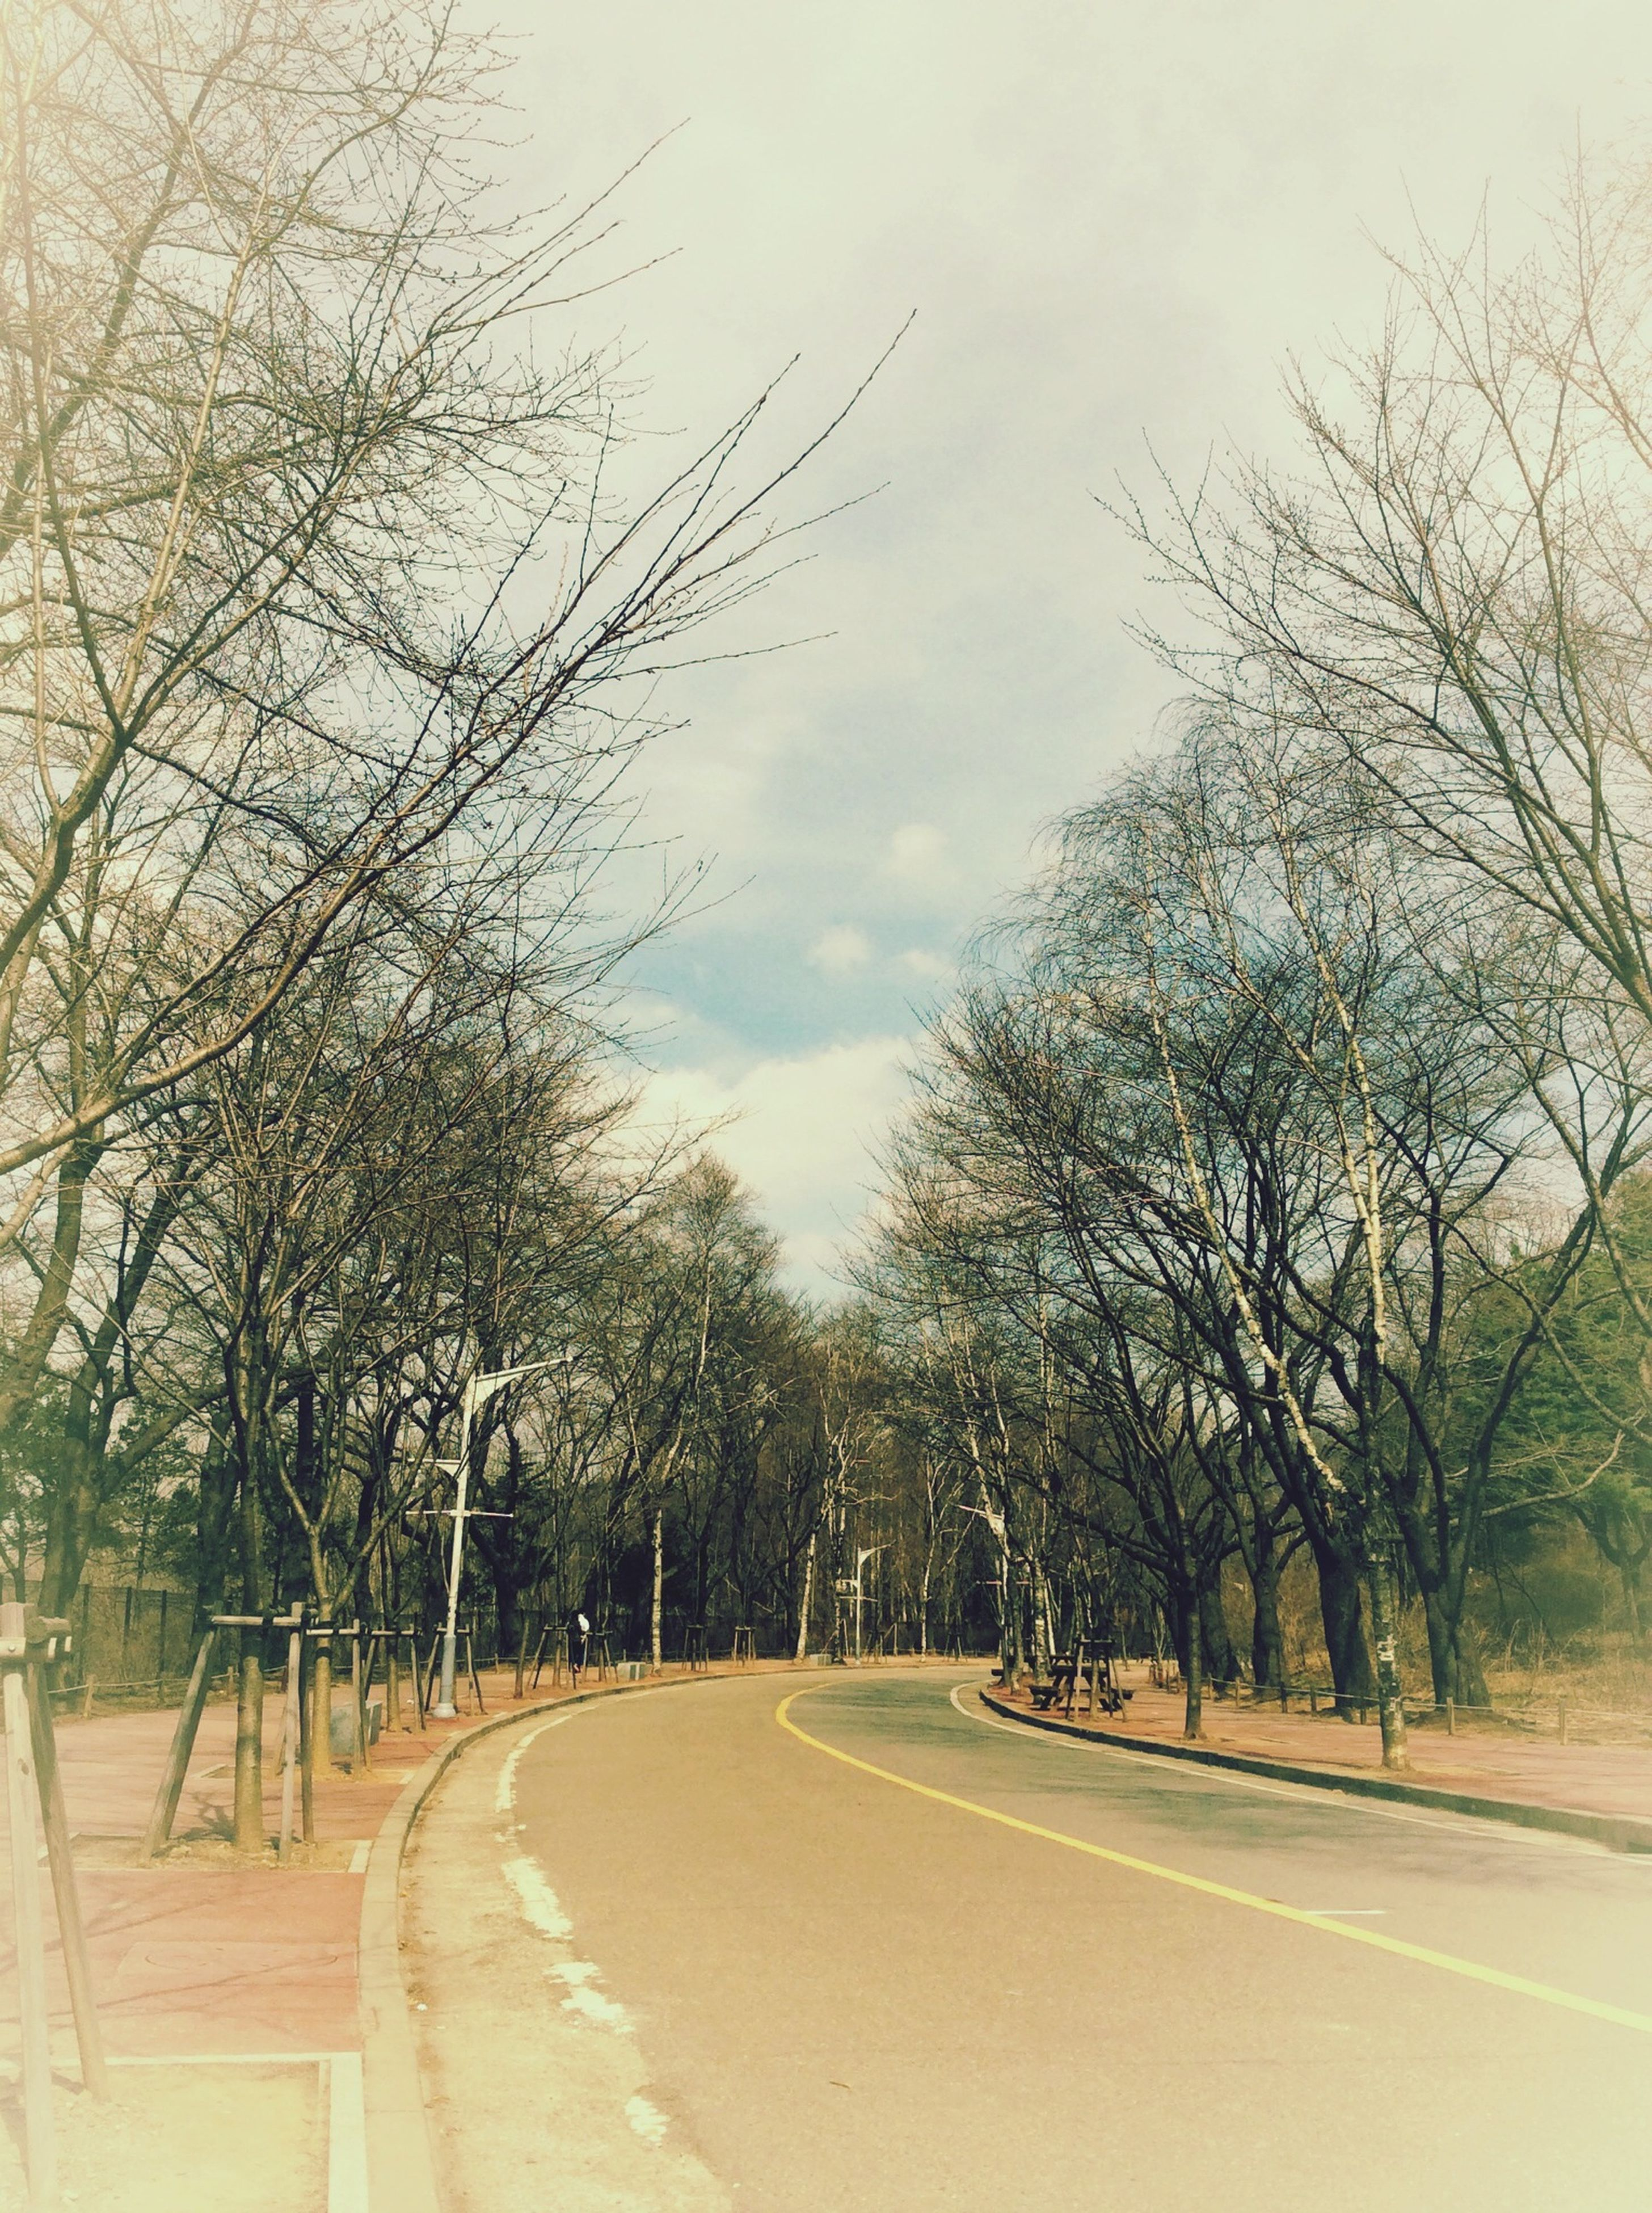 the way forward, road, tree, transportation, diminishing perspective, sky, road marking, vanishing point, empty road, tranquility, street, country road, empty, nature, tranquil scene, cloud - sky, treelined, long, day, bare tree